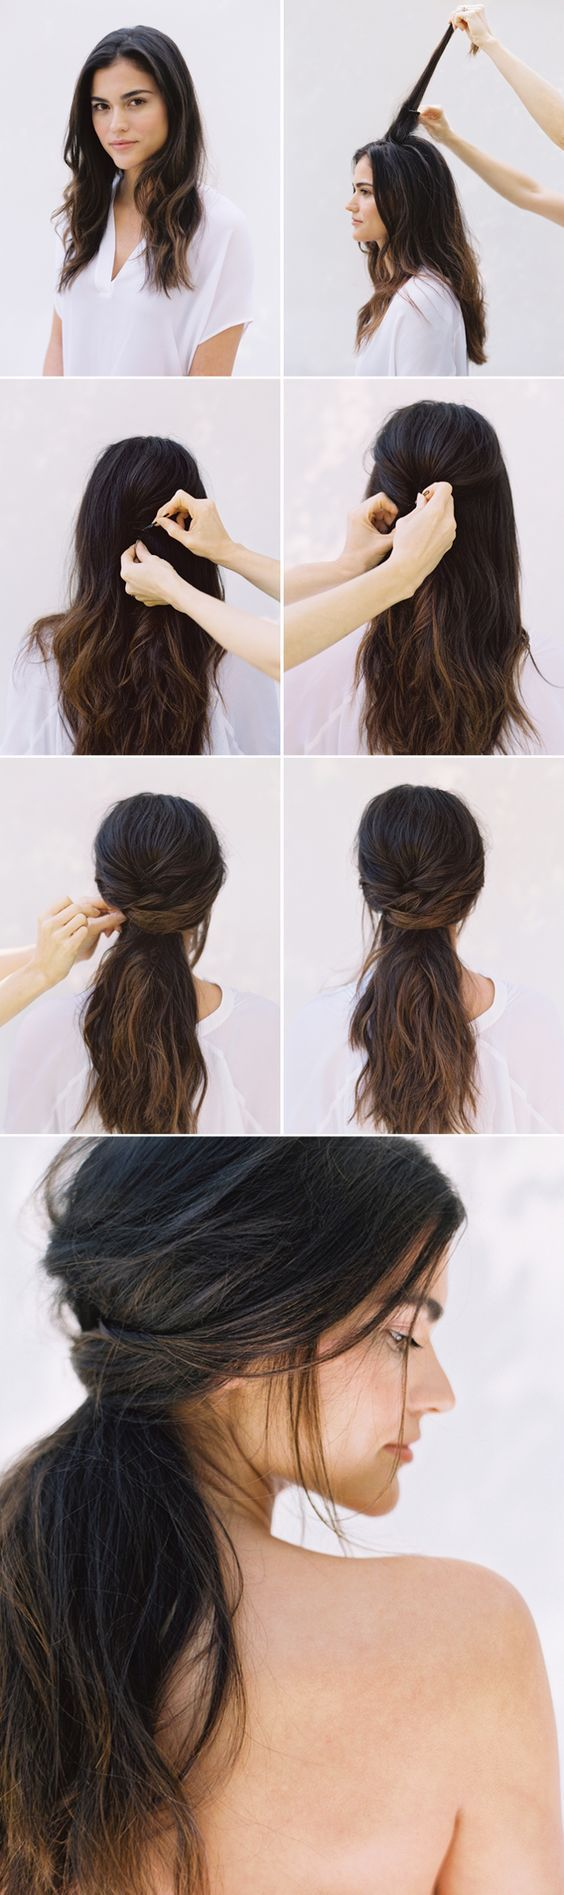 The best images about hair on pinterest stick it easy